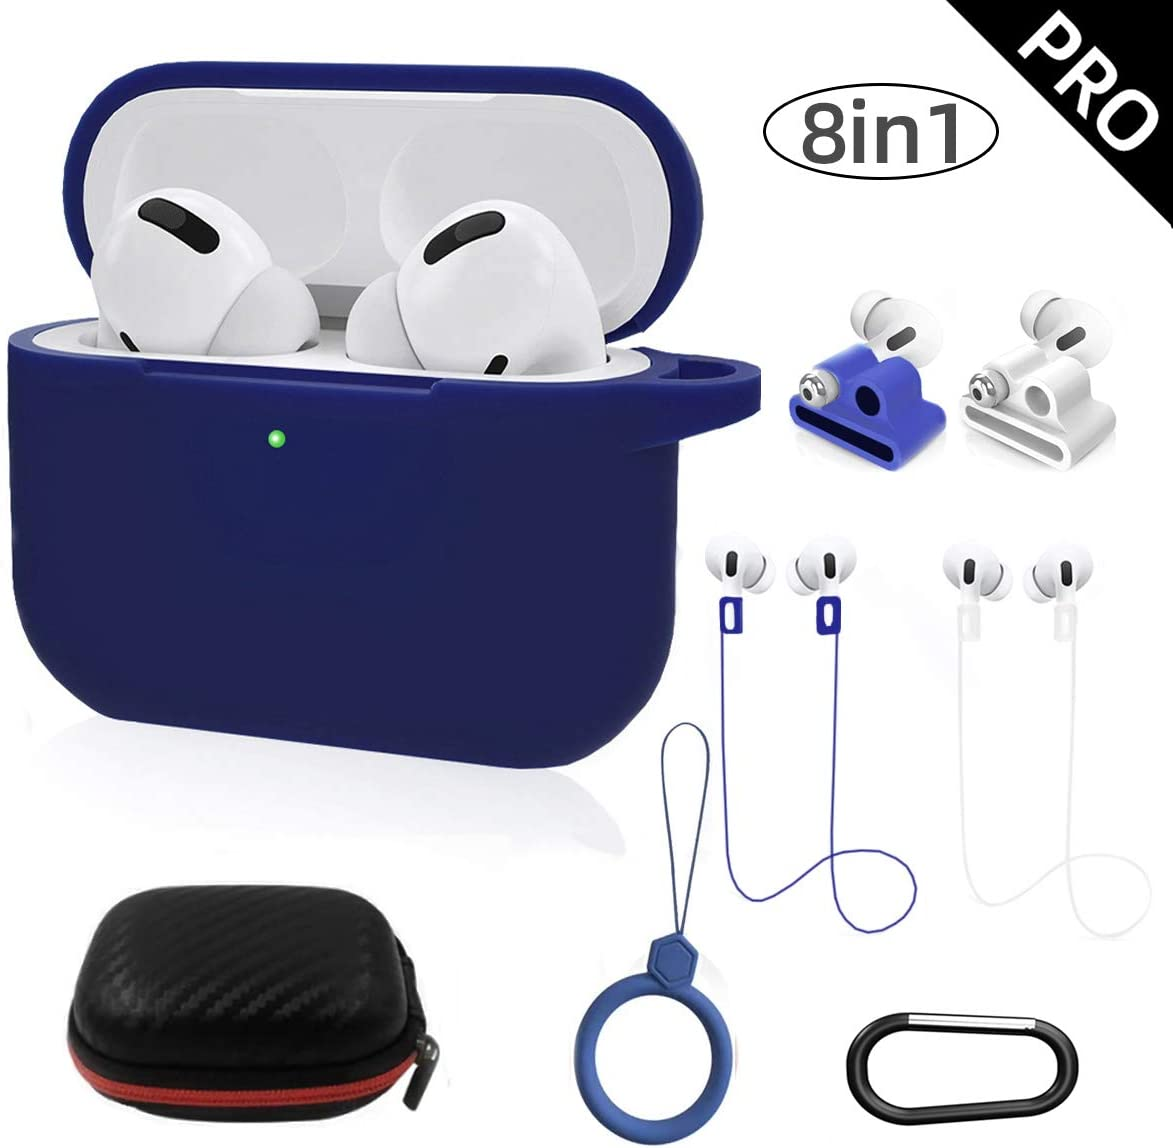 Amazon Com Airpods Pro Case Cover Toluohu Airpods Pro Accessories 8 In 1 Kit Silicone Cover For Apple Airpod Gen3 With Ring Watch Band Airpods Pro Holder Keychain Carrying Box Blue